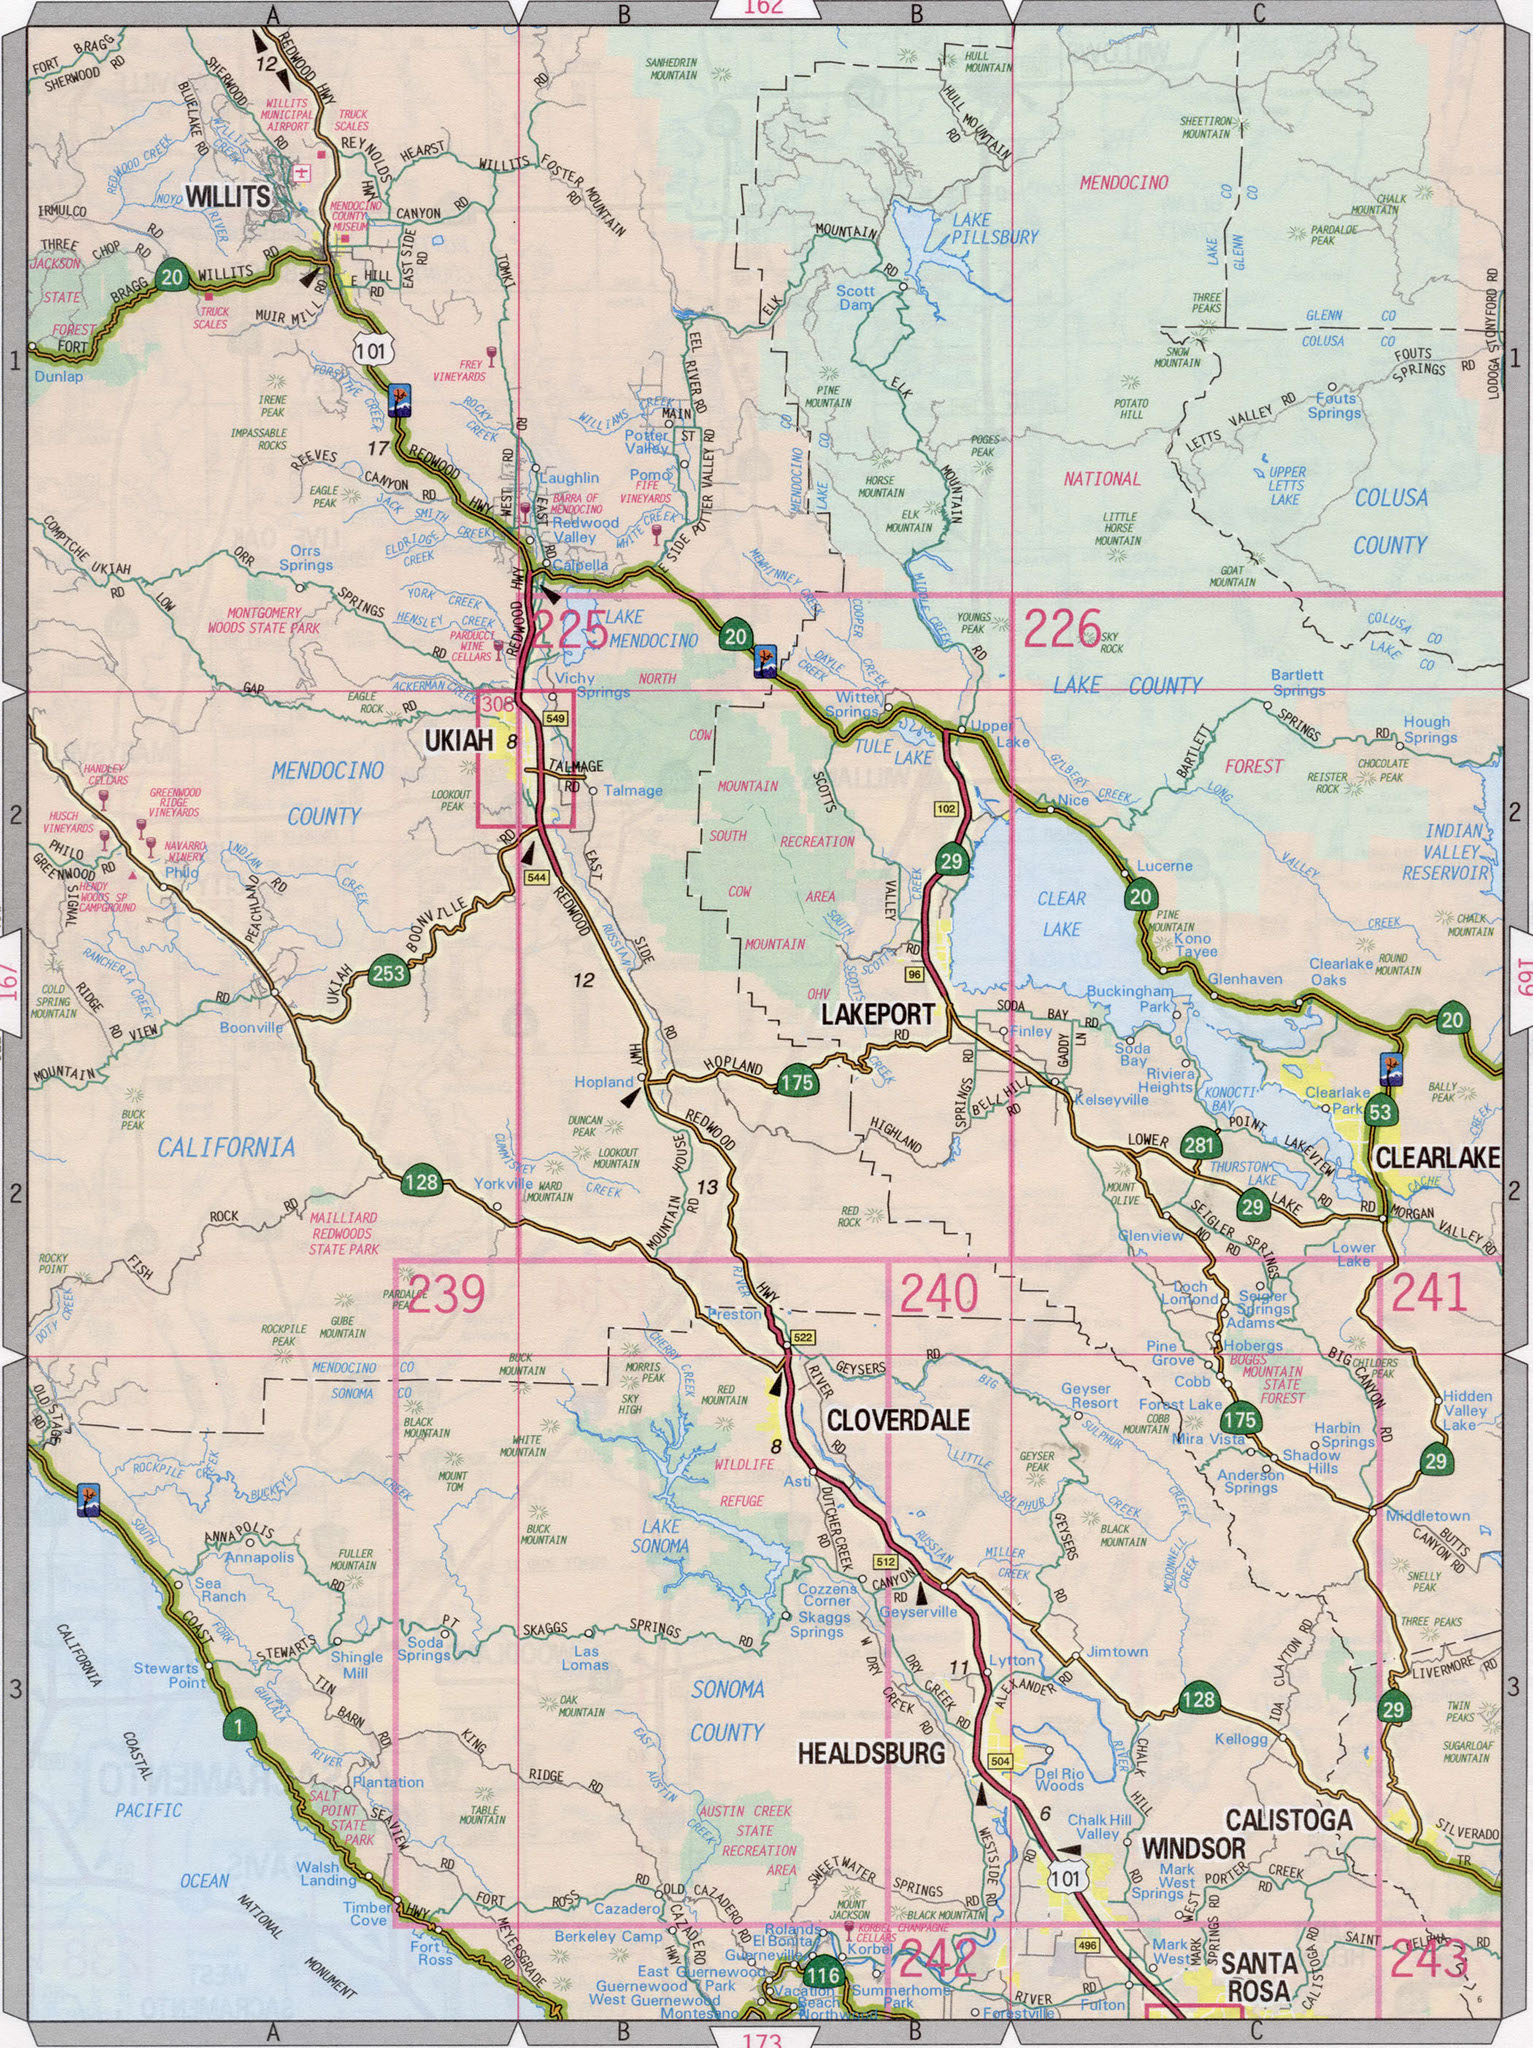 Sonoma county highway map on detailed map of nevada county, detailed map of kern county, detailed map of ventura county, detailed map of hillsborough county, detailed map of riverside county, detailed map of stanislaus county, detailed map of fresno county, detailed map of orange county,